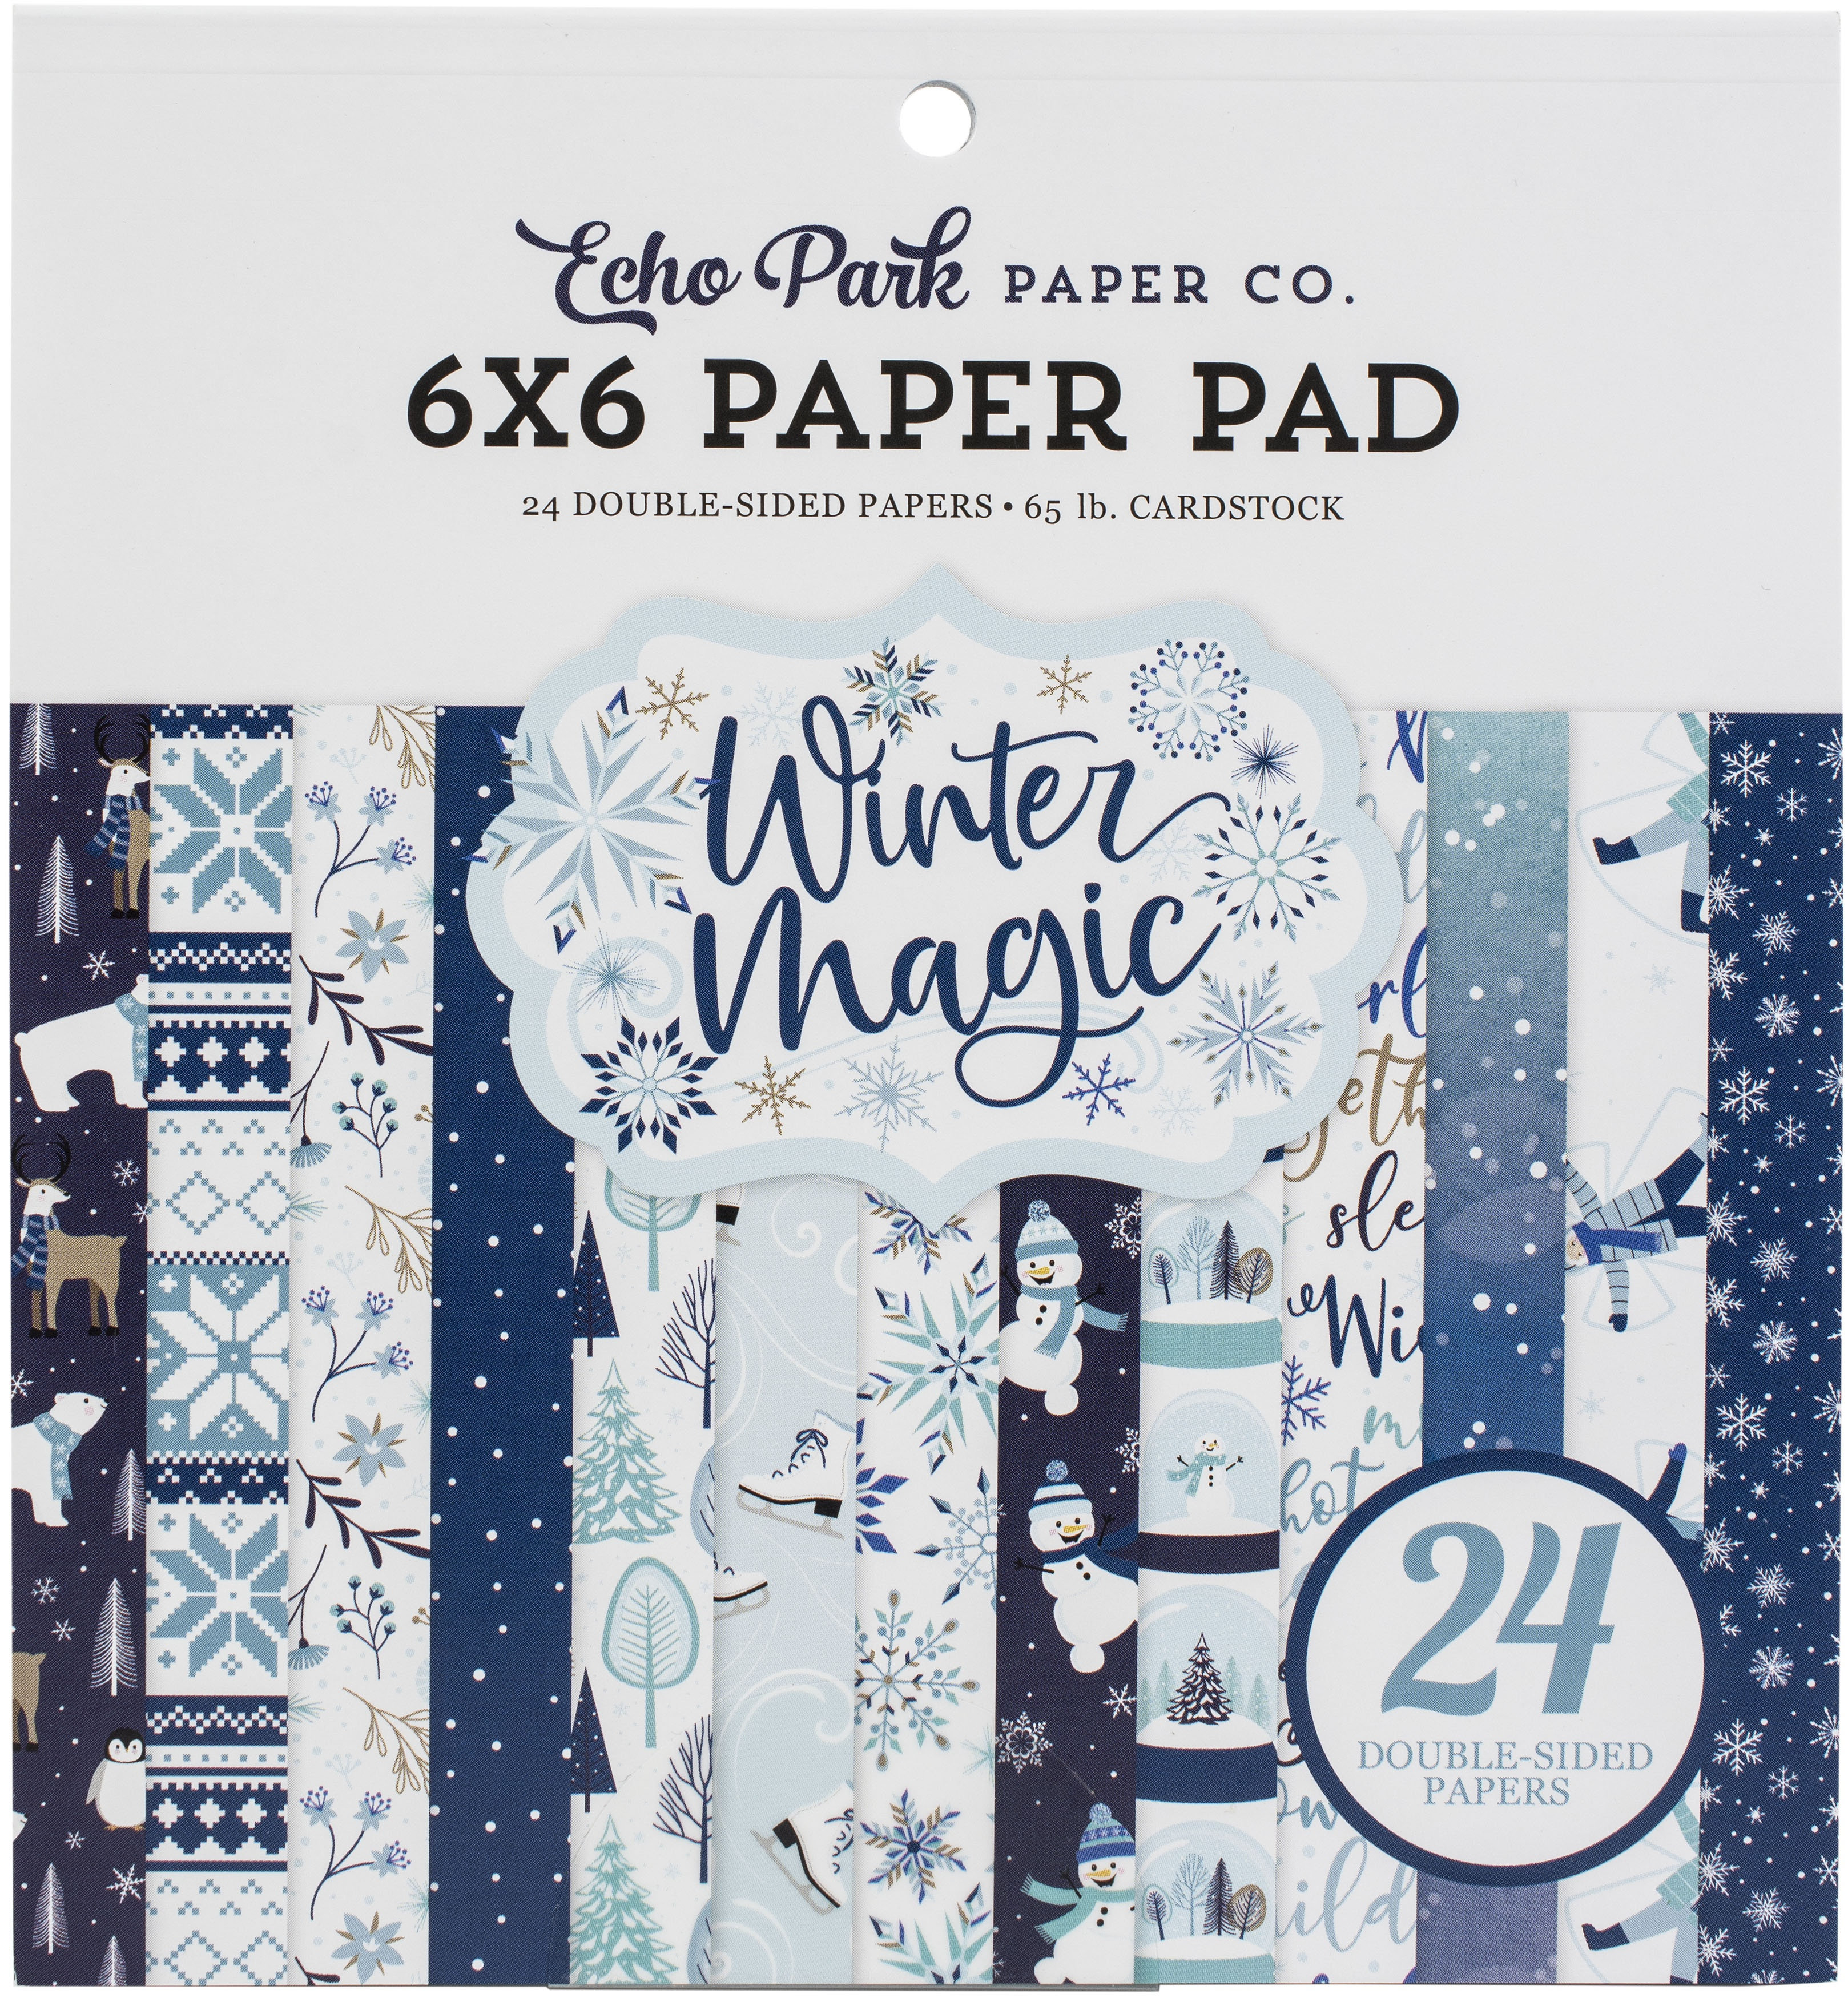 Echo Park Double-Sided Paper Pad 6X6 24/Pkg-Winter Magic